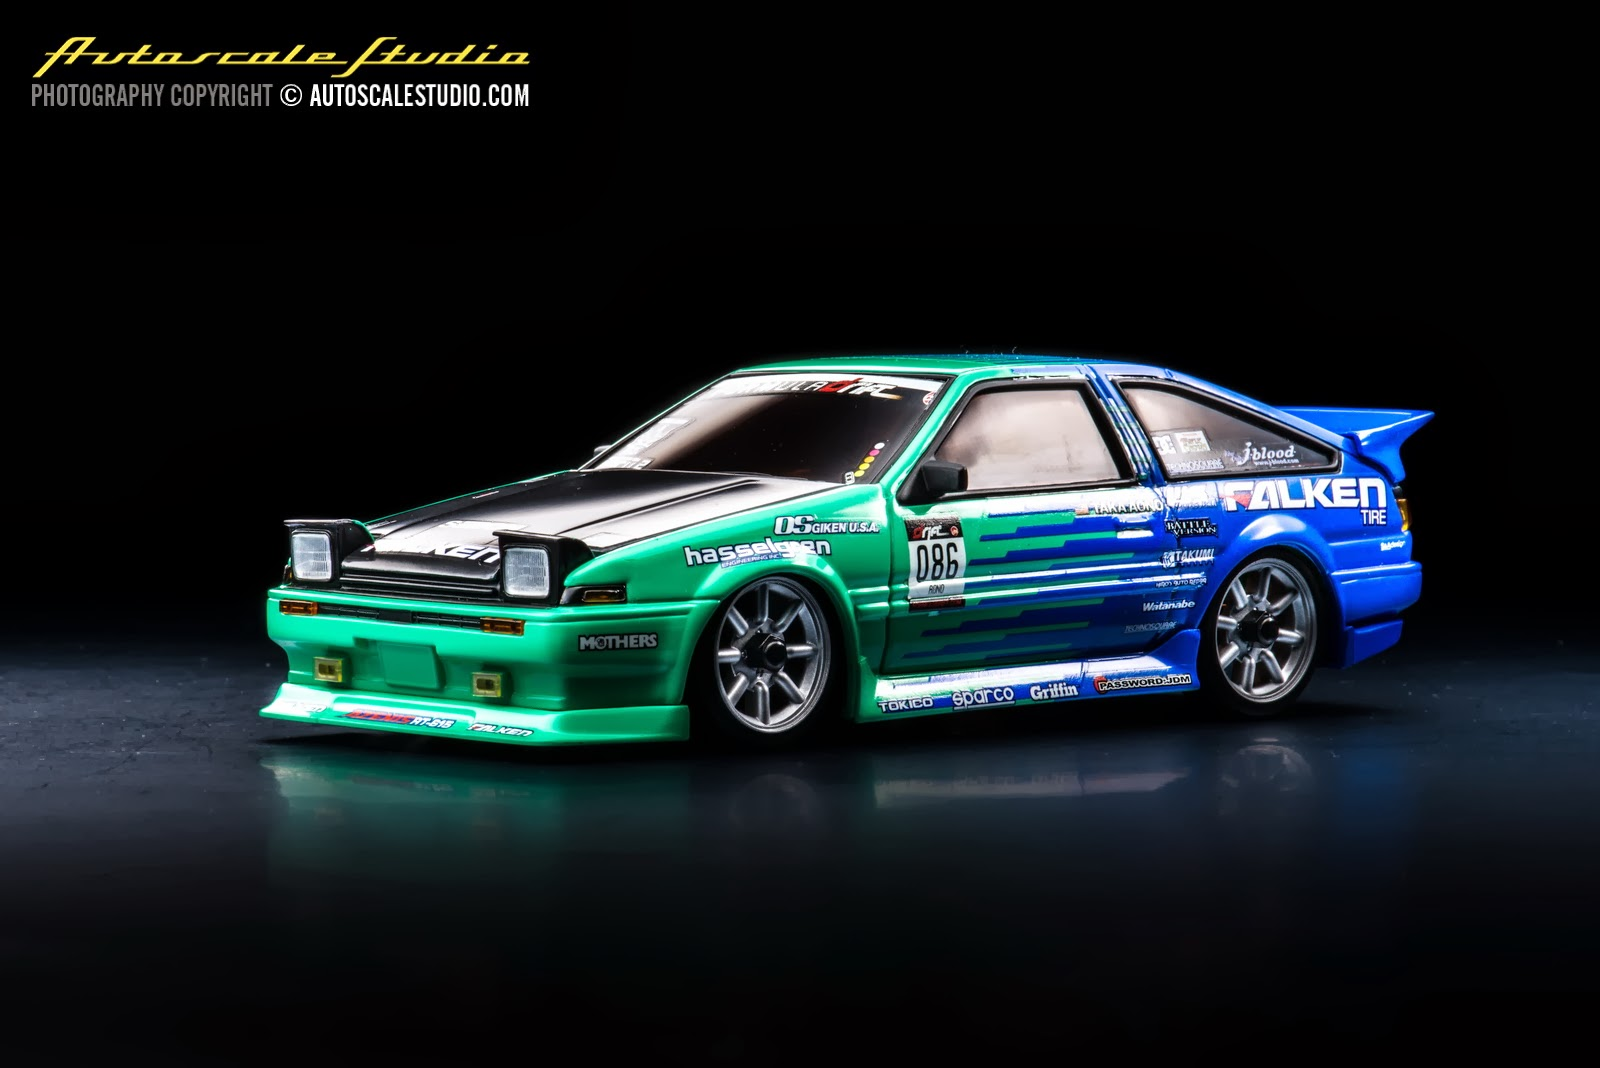 mzp410fa formula d falken toyota sprinter trueno ae86 autoscale studio. Black Bedroom Furniture Sets. Home Design Ideas